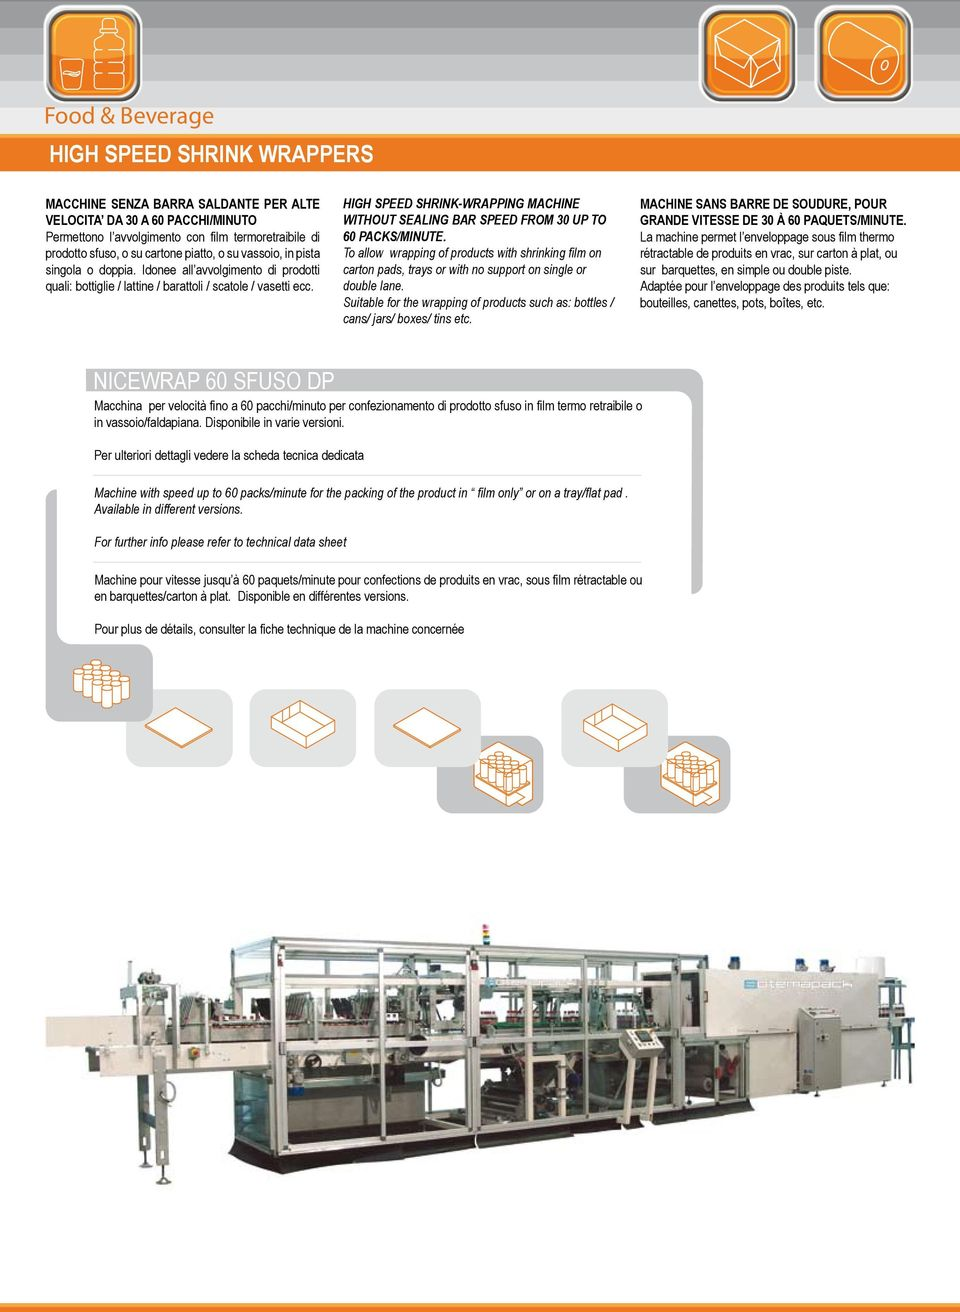 HIGH SPEED SHRINK-WRAPPING MACHINE WITHOUT SEALING BAR SPEED FROM 30 UP TO 60 PACKS/MINUTE.